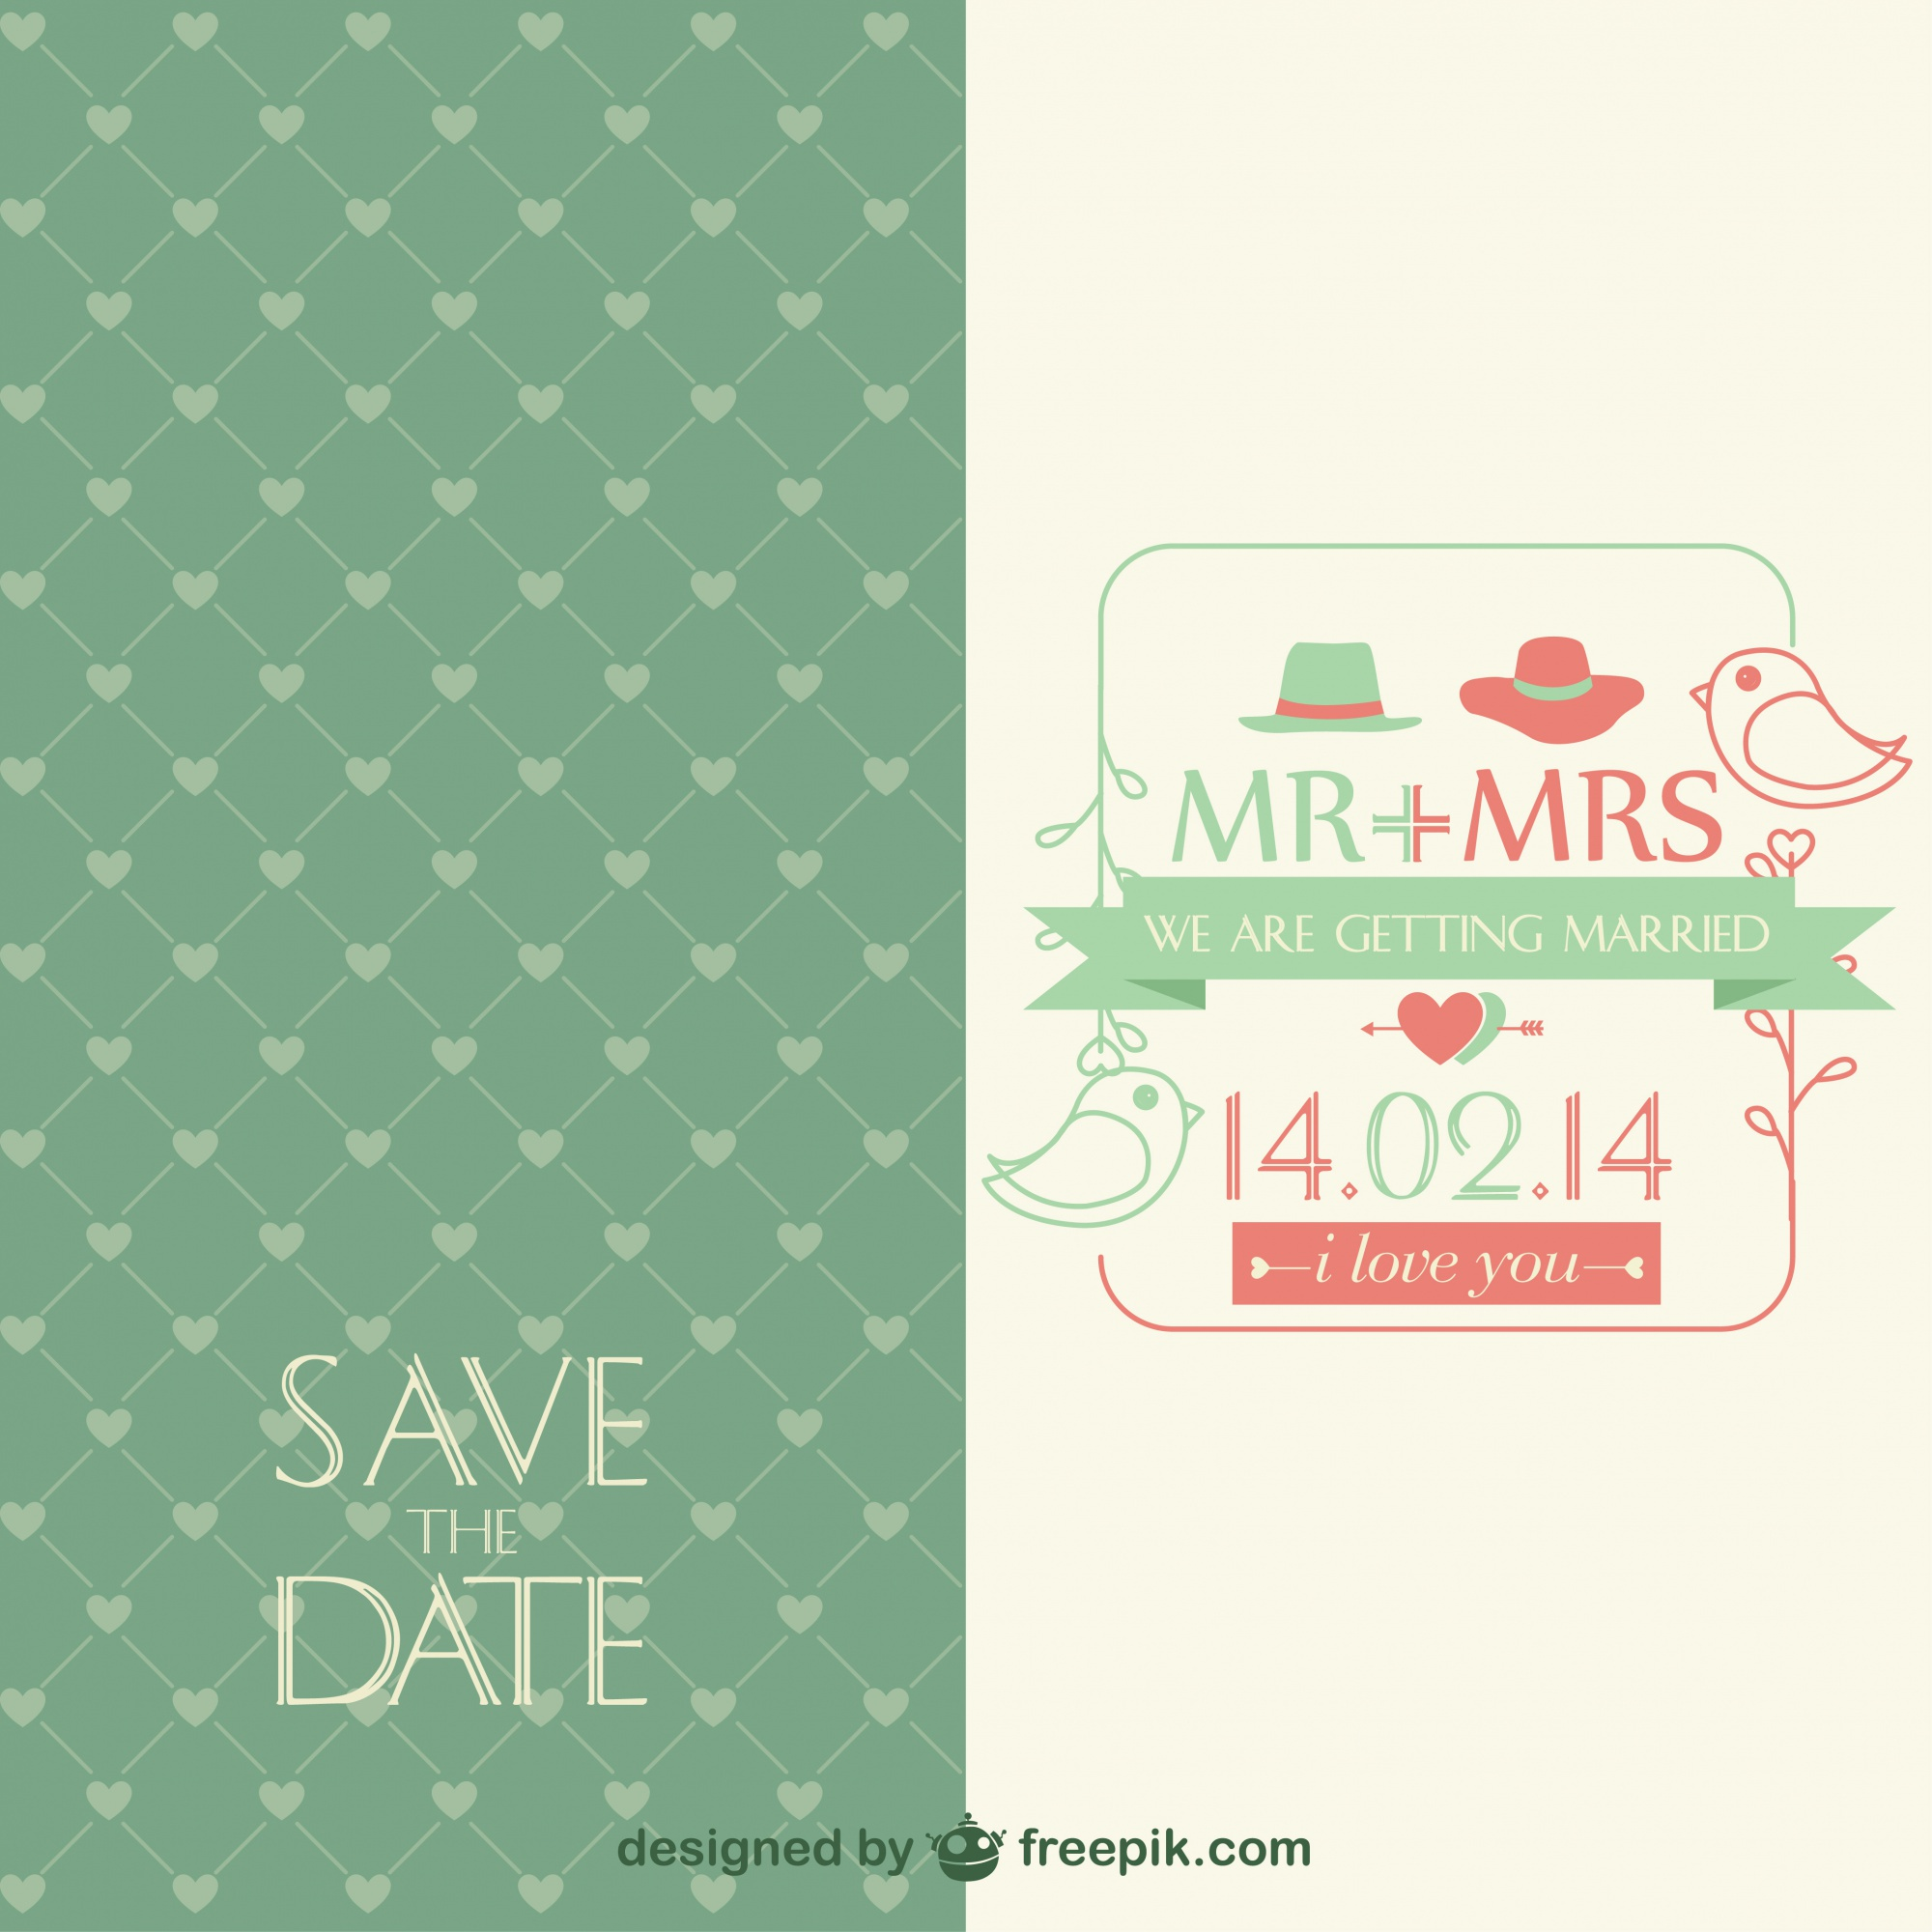 Vintage vector wedding invitation